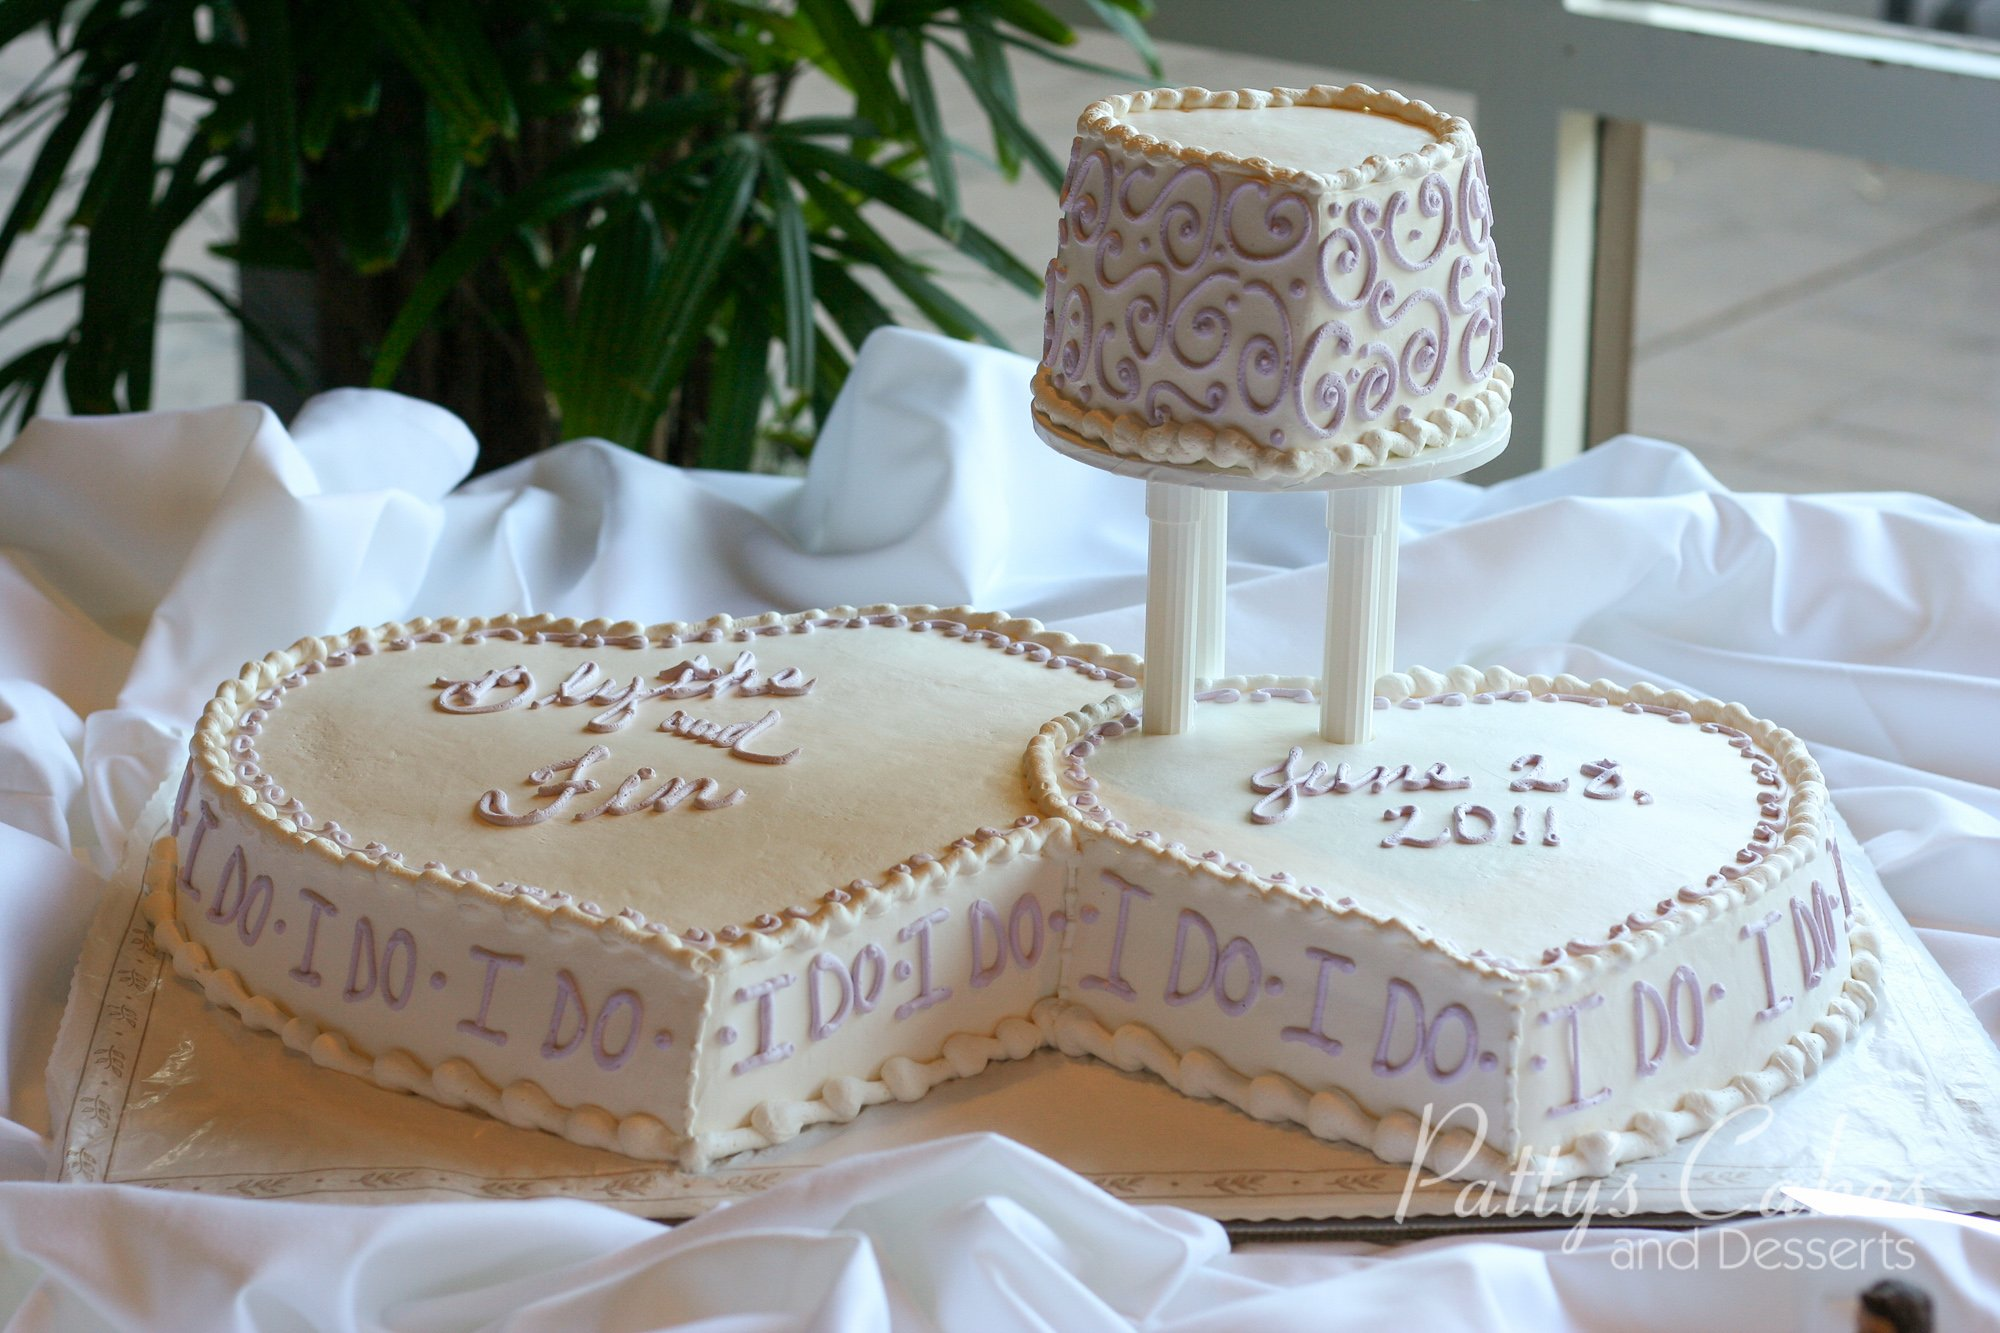 List Of Ice Cream Cakes